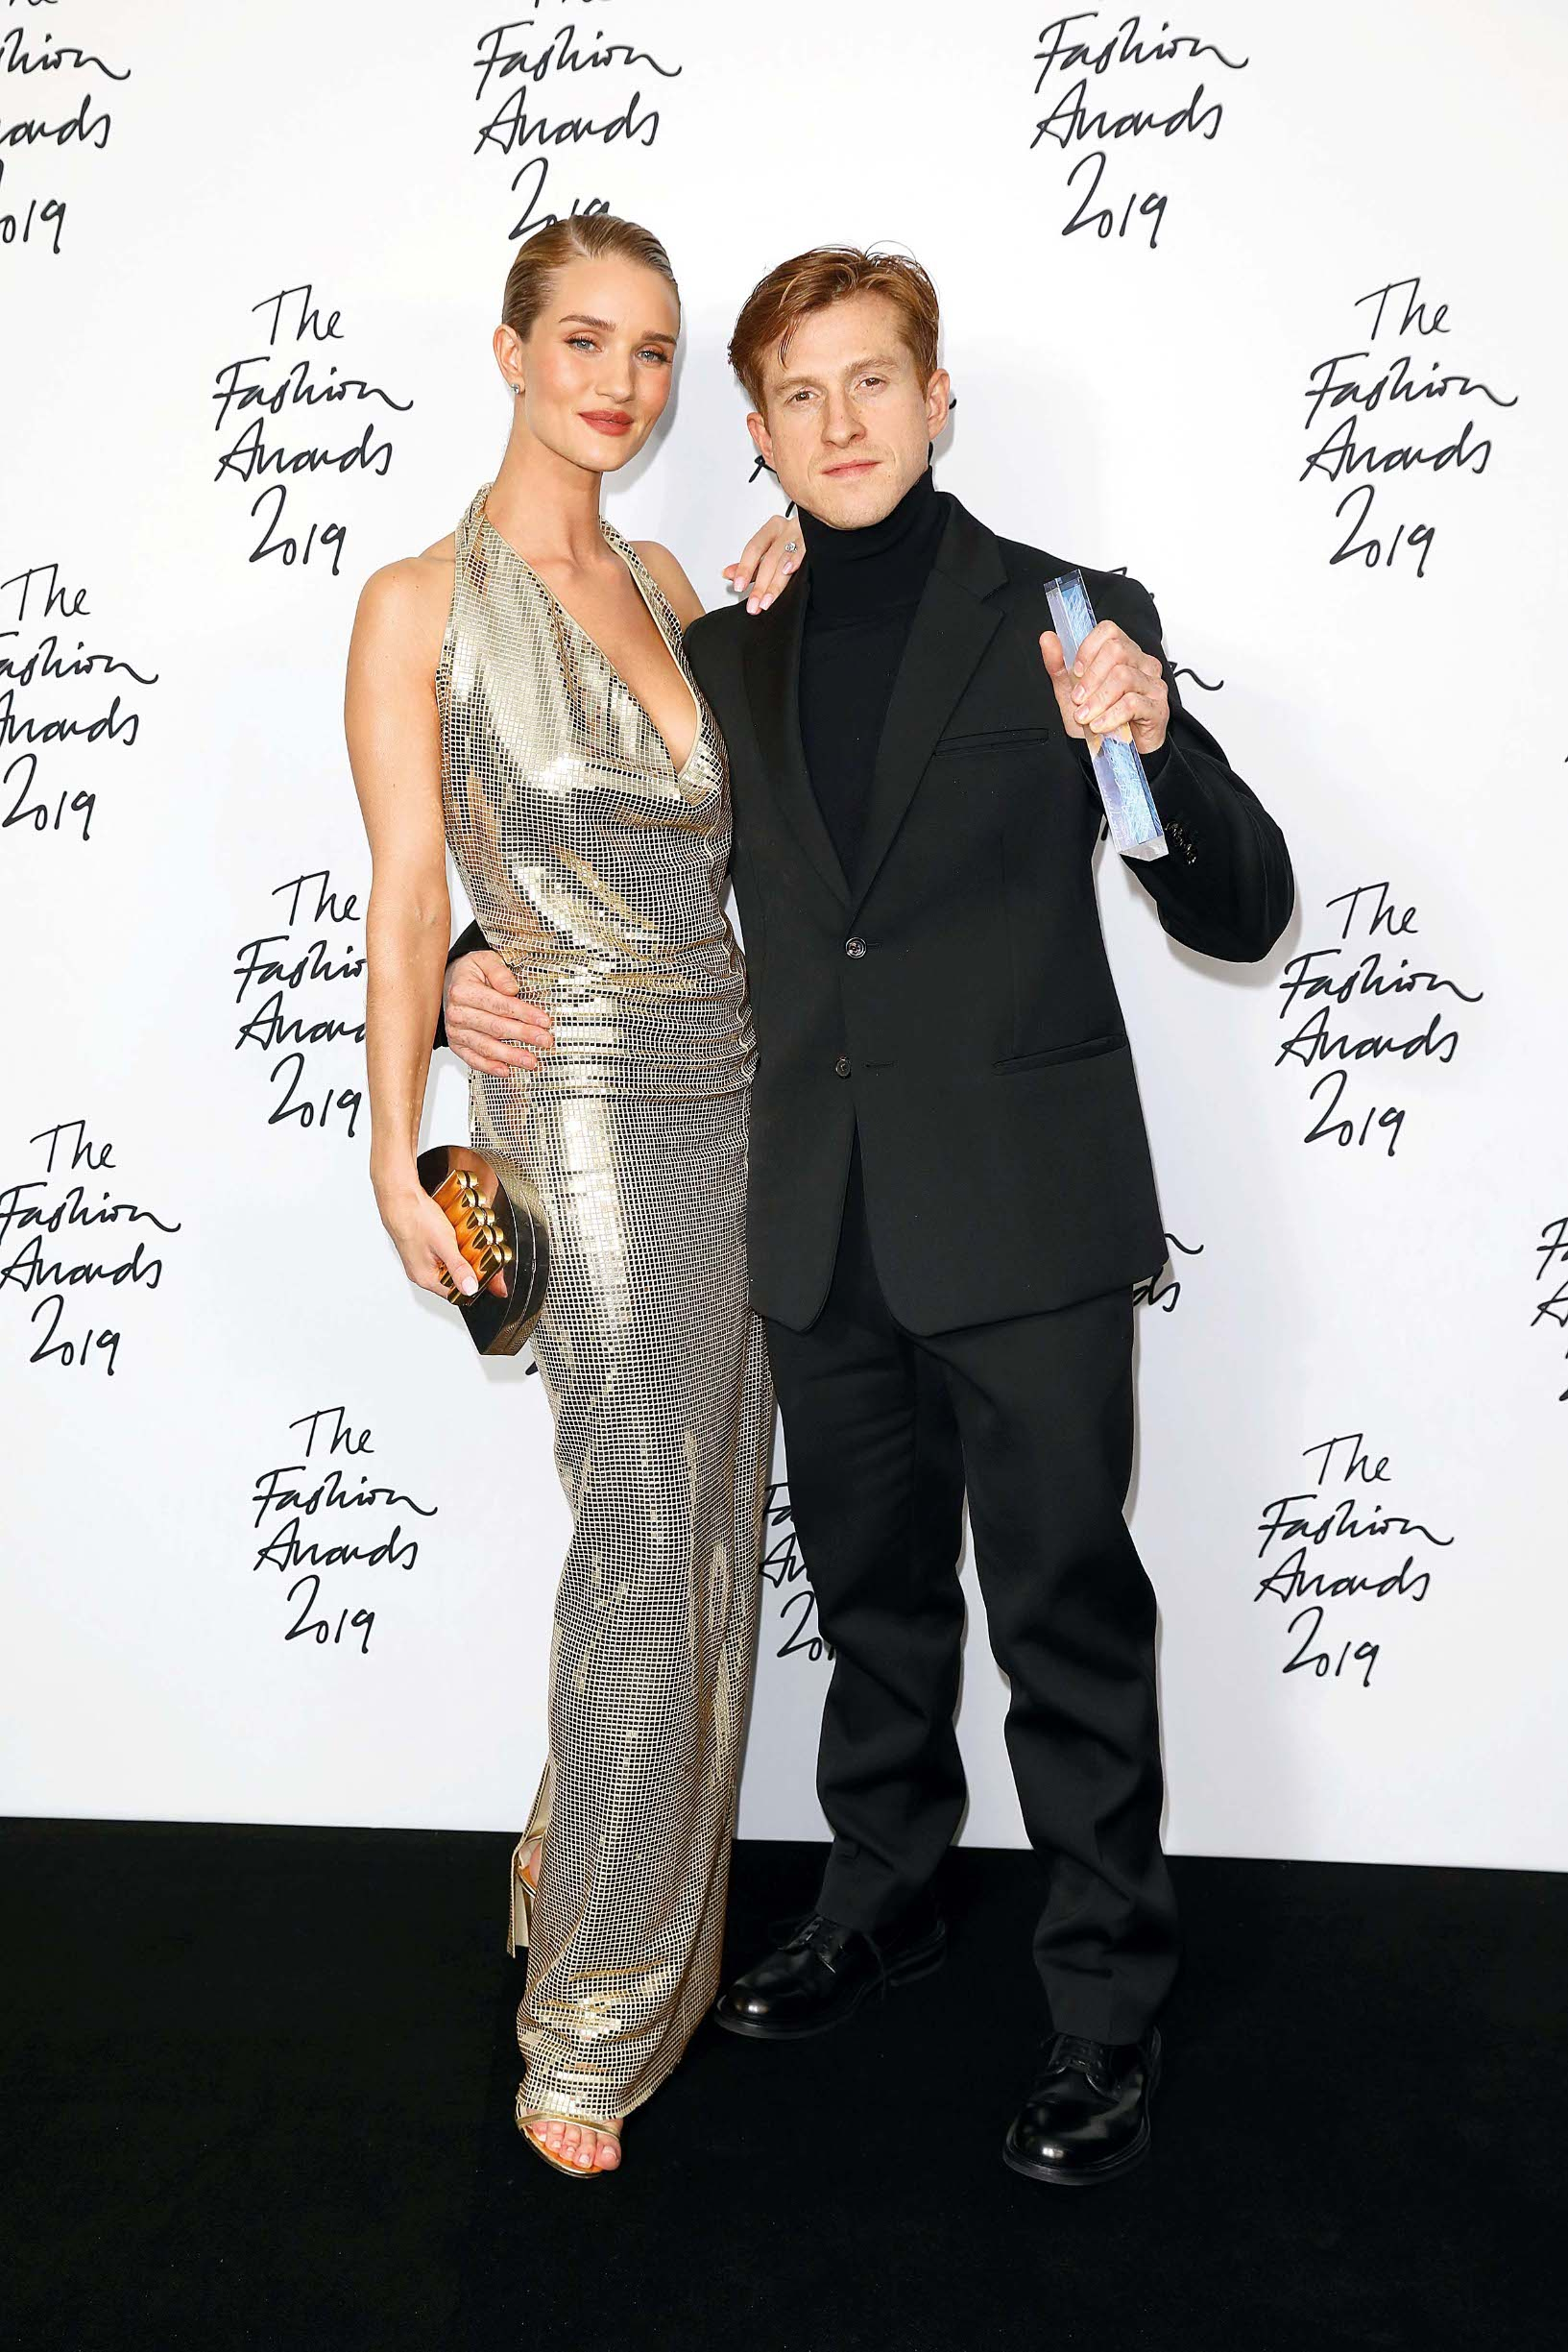 LONDON, ENGLAND - DECEMBER 02:  Daniel Lee poses with Rosie Huntington-Whiteley in the winners room after accepting the Accessories Designer of the Year award on behalf of Bottega Veneta during The Fashion Awards 2019 held at Royal Albert Hall on December 02, 2019 in London, England. (Photo by Tim Whitby/BFC/Getty Images)